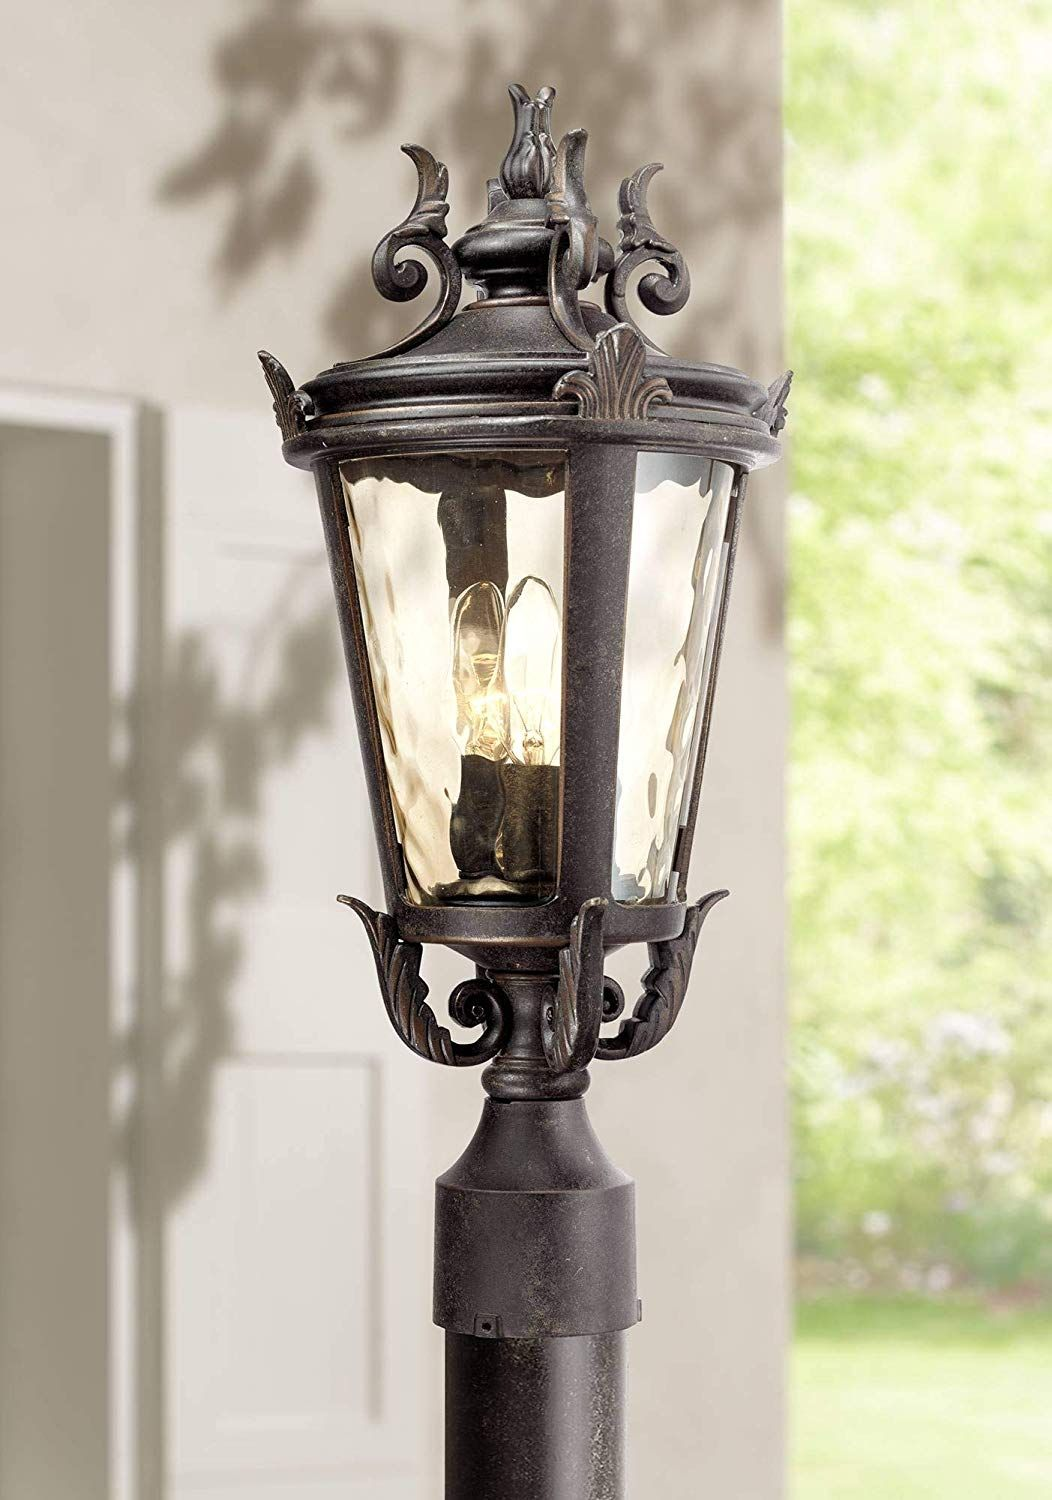 Casa Marseille Traditional Post Light Pier Mount Fixture Mediterranean Veranda Bronze S Post Lights Outdoor Post Lights Contemporary Outdoor Lighting